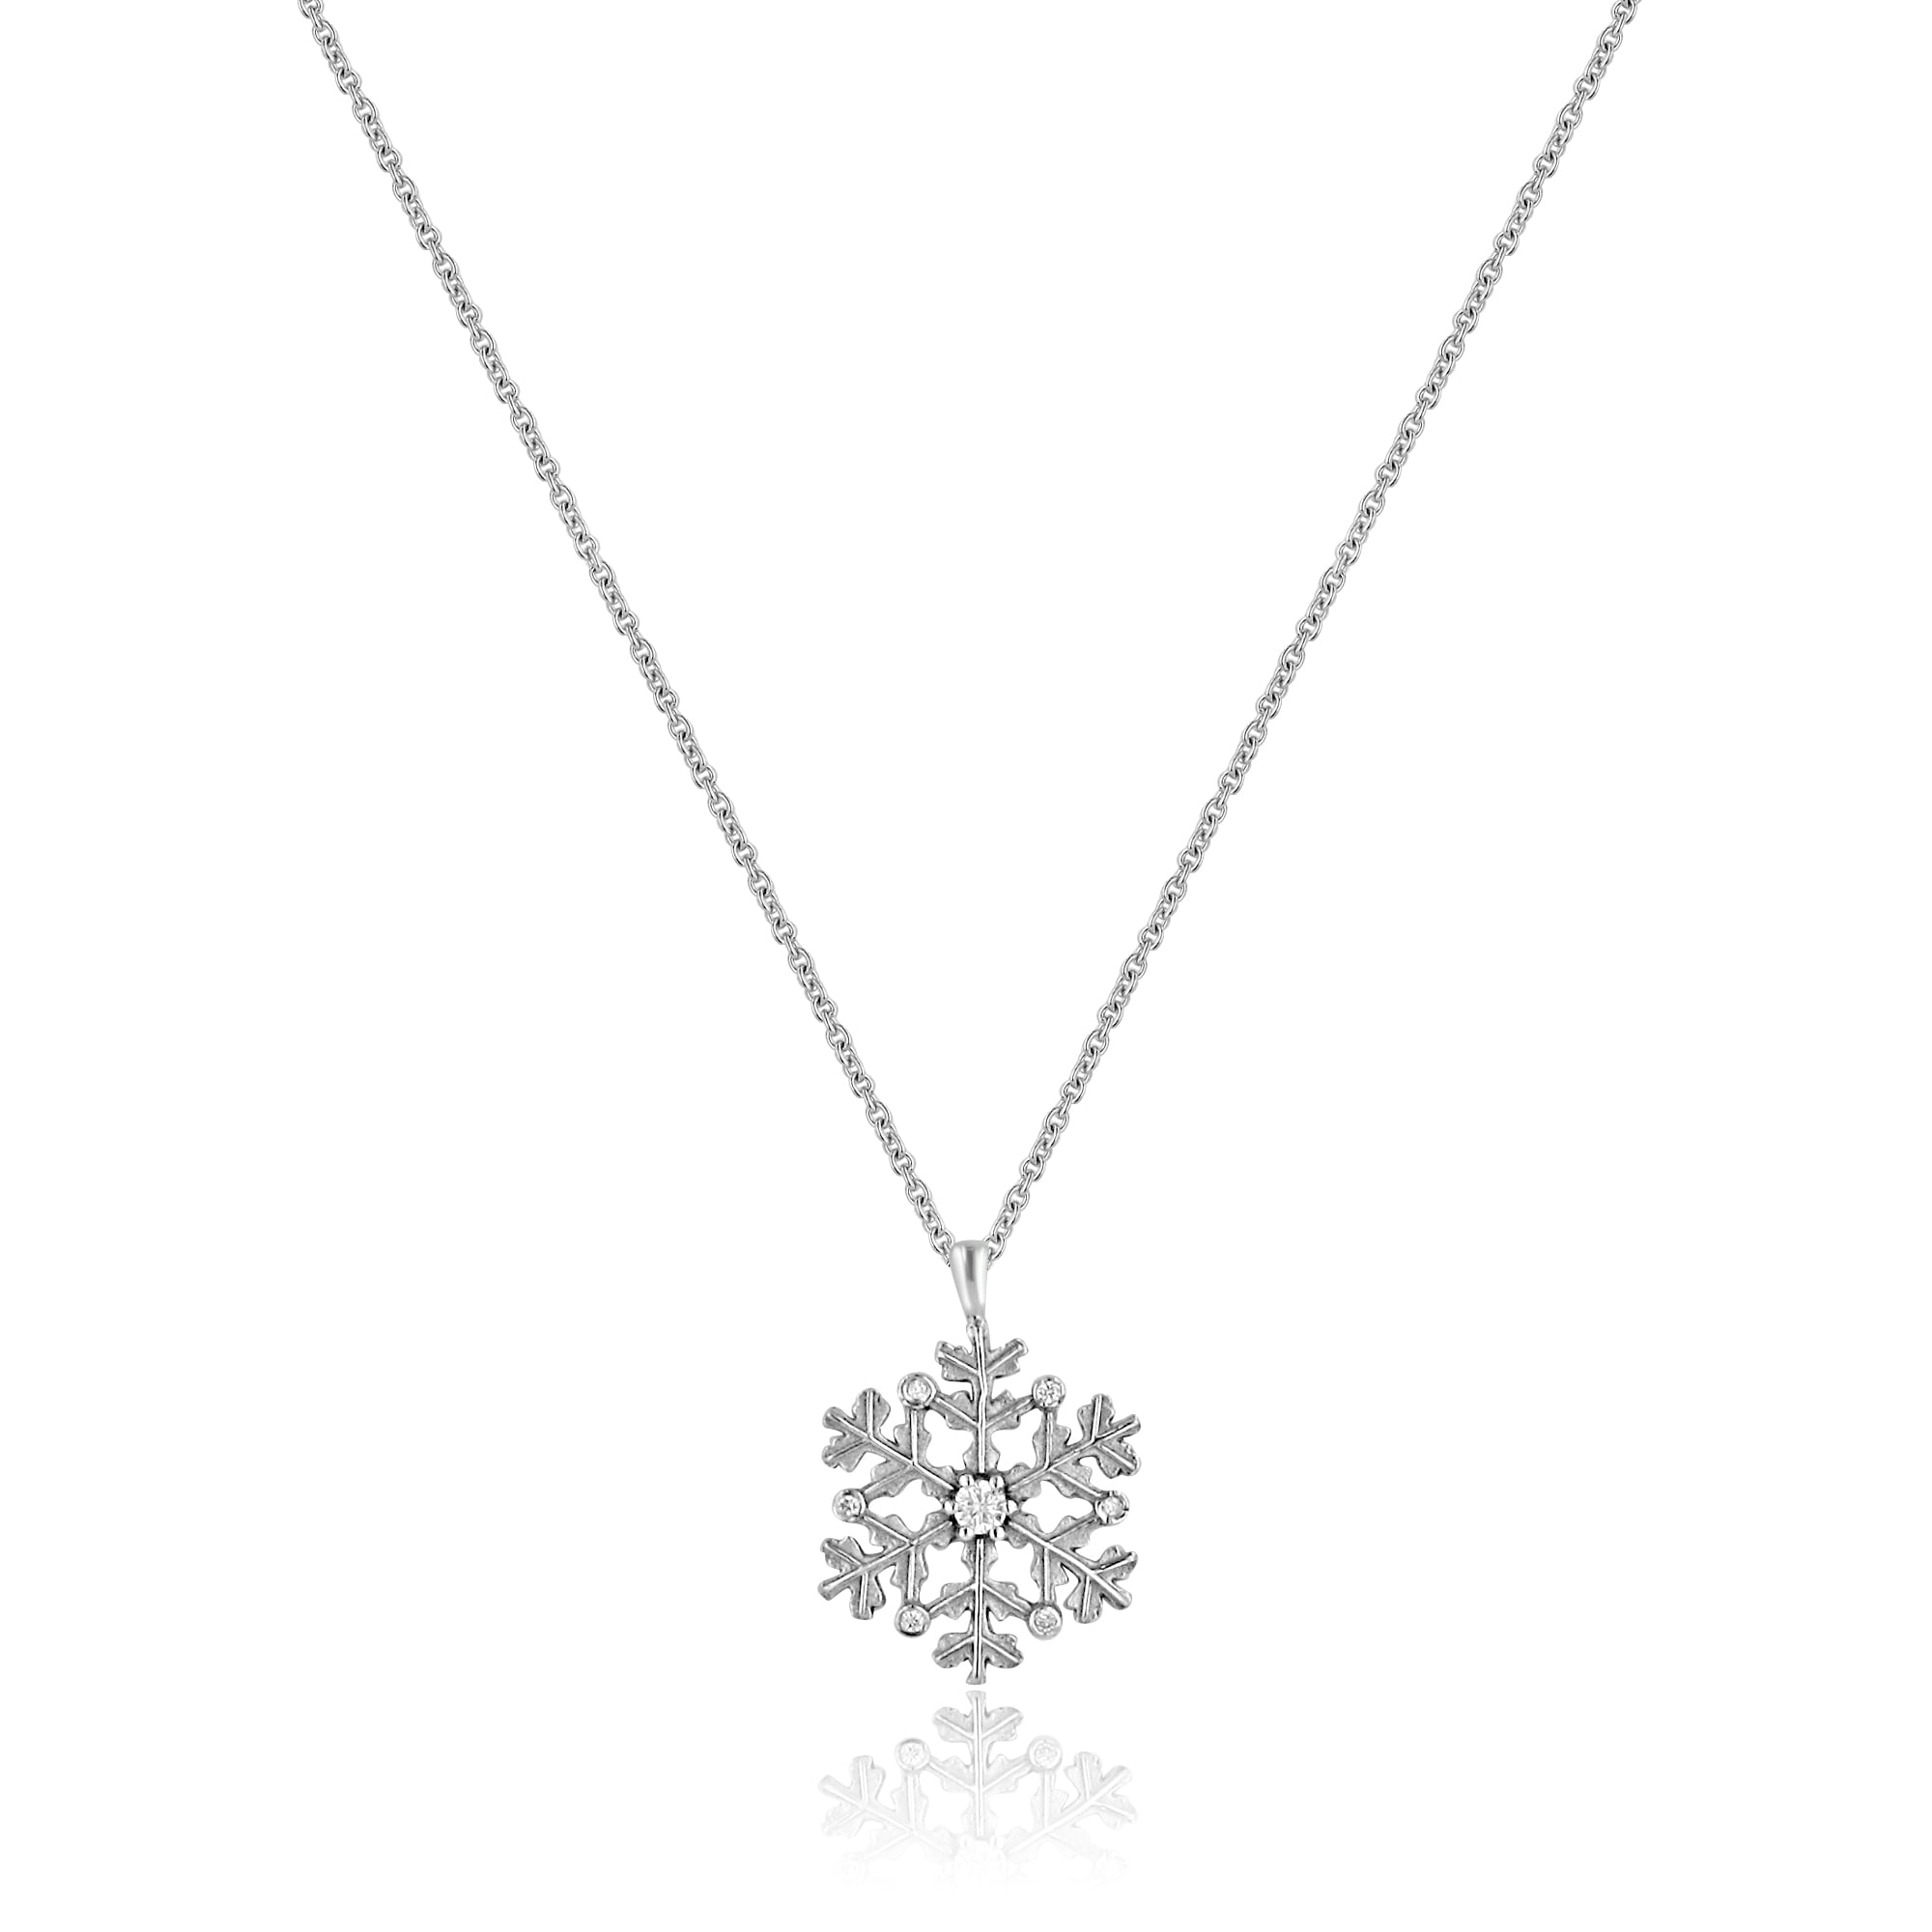 snowflake cherie designs dori necklace products wallach jewelry diamond pendant